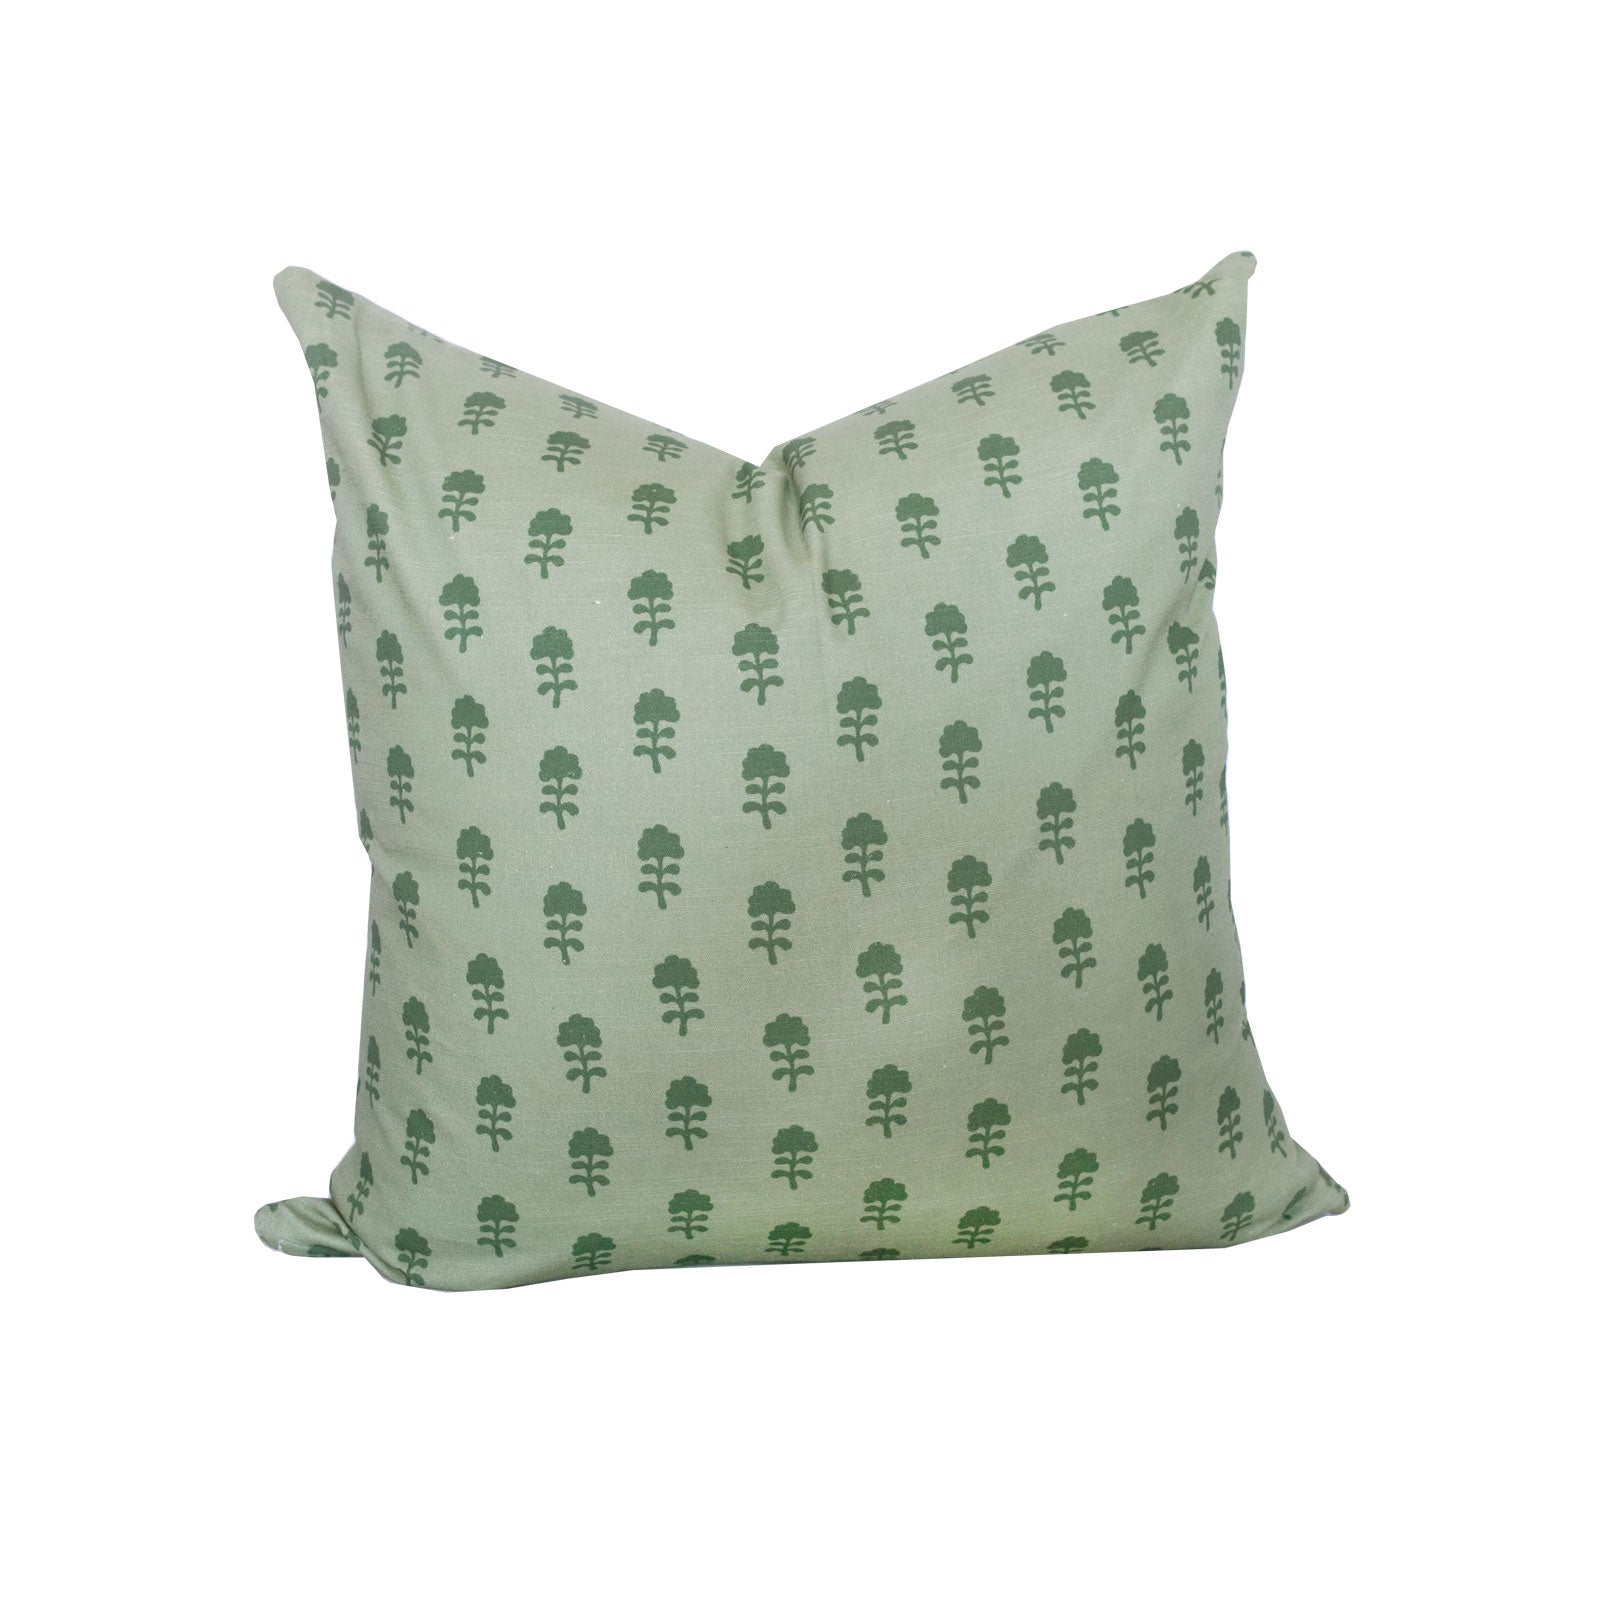 Birdie Pillow in Olive on Sage no. 1